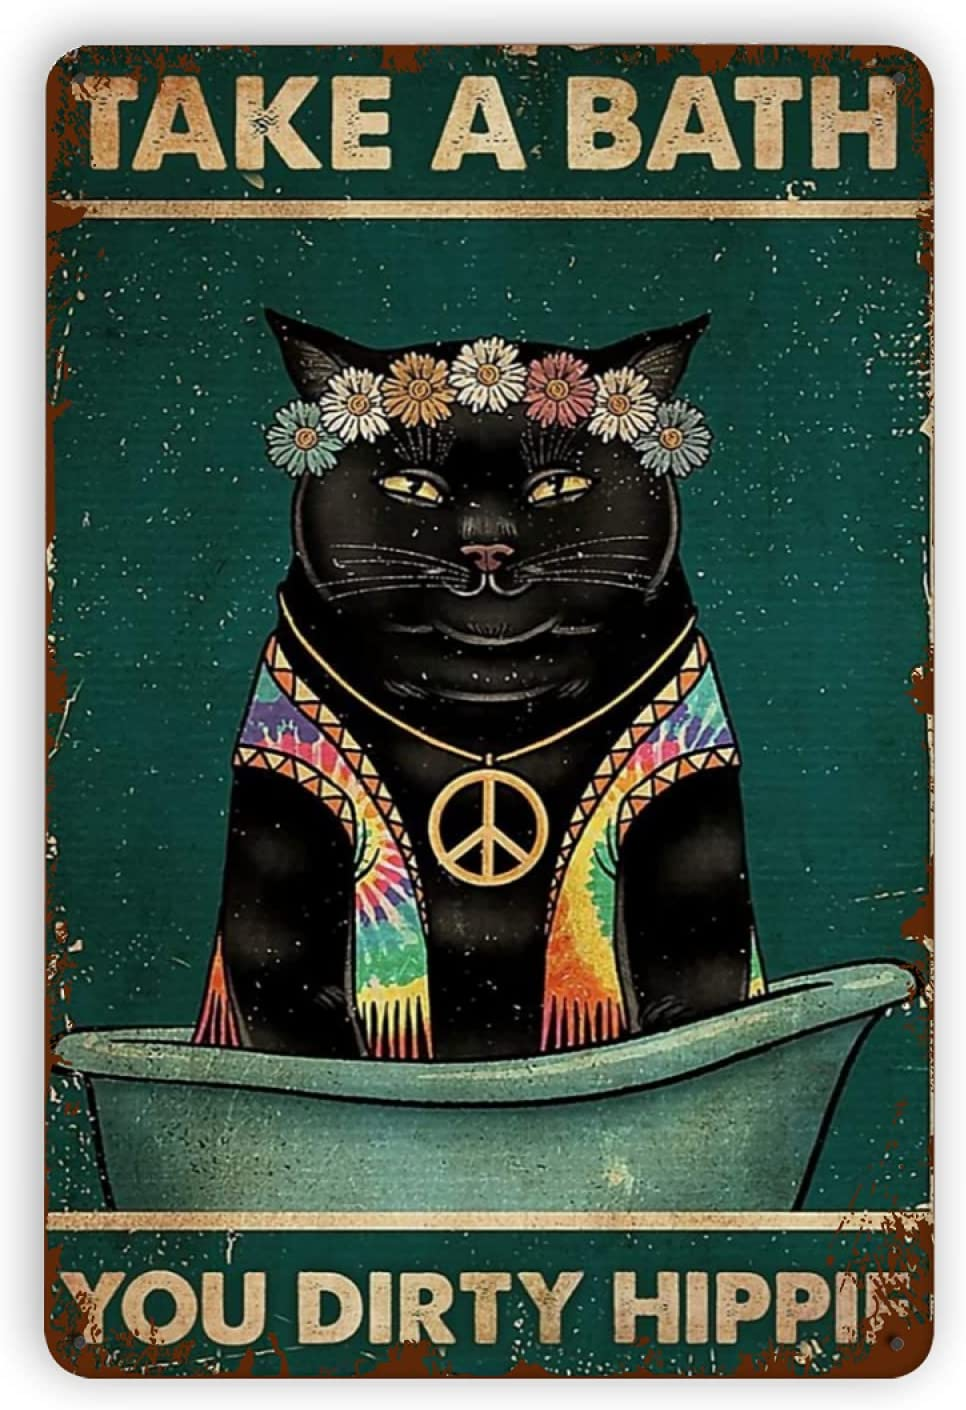 Pizigci Cat Take A Bath You Dirty Hippie Retro Metal Tin Sign, Vintage Iron Painting Bathroom Decor Wall Art Decoration for Home Coffee 12X8 Inch